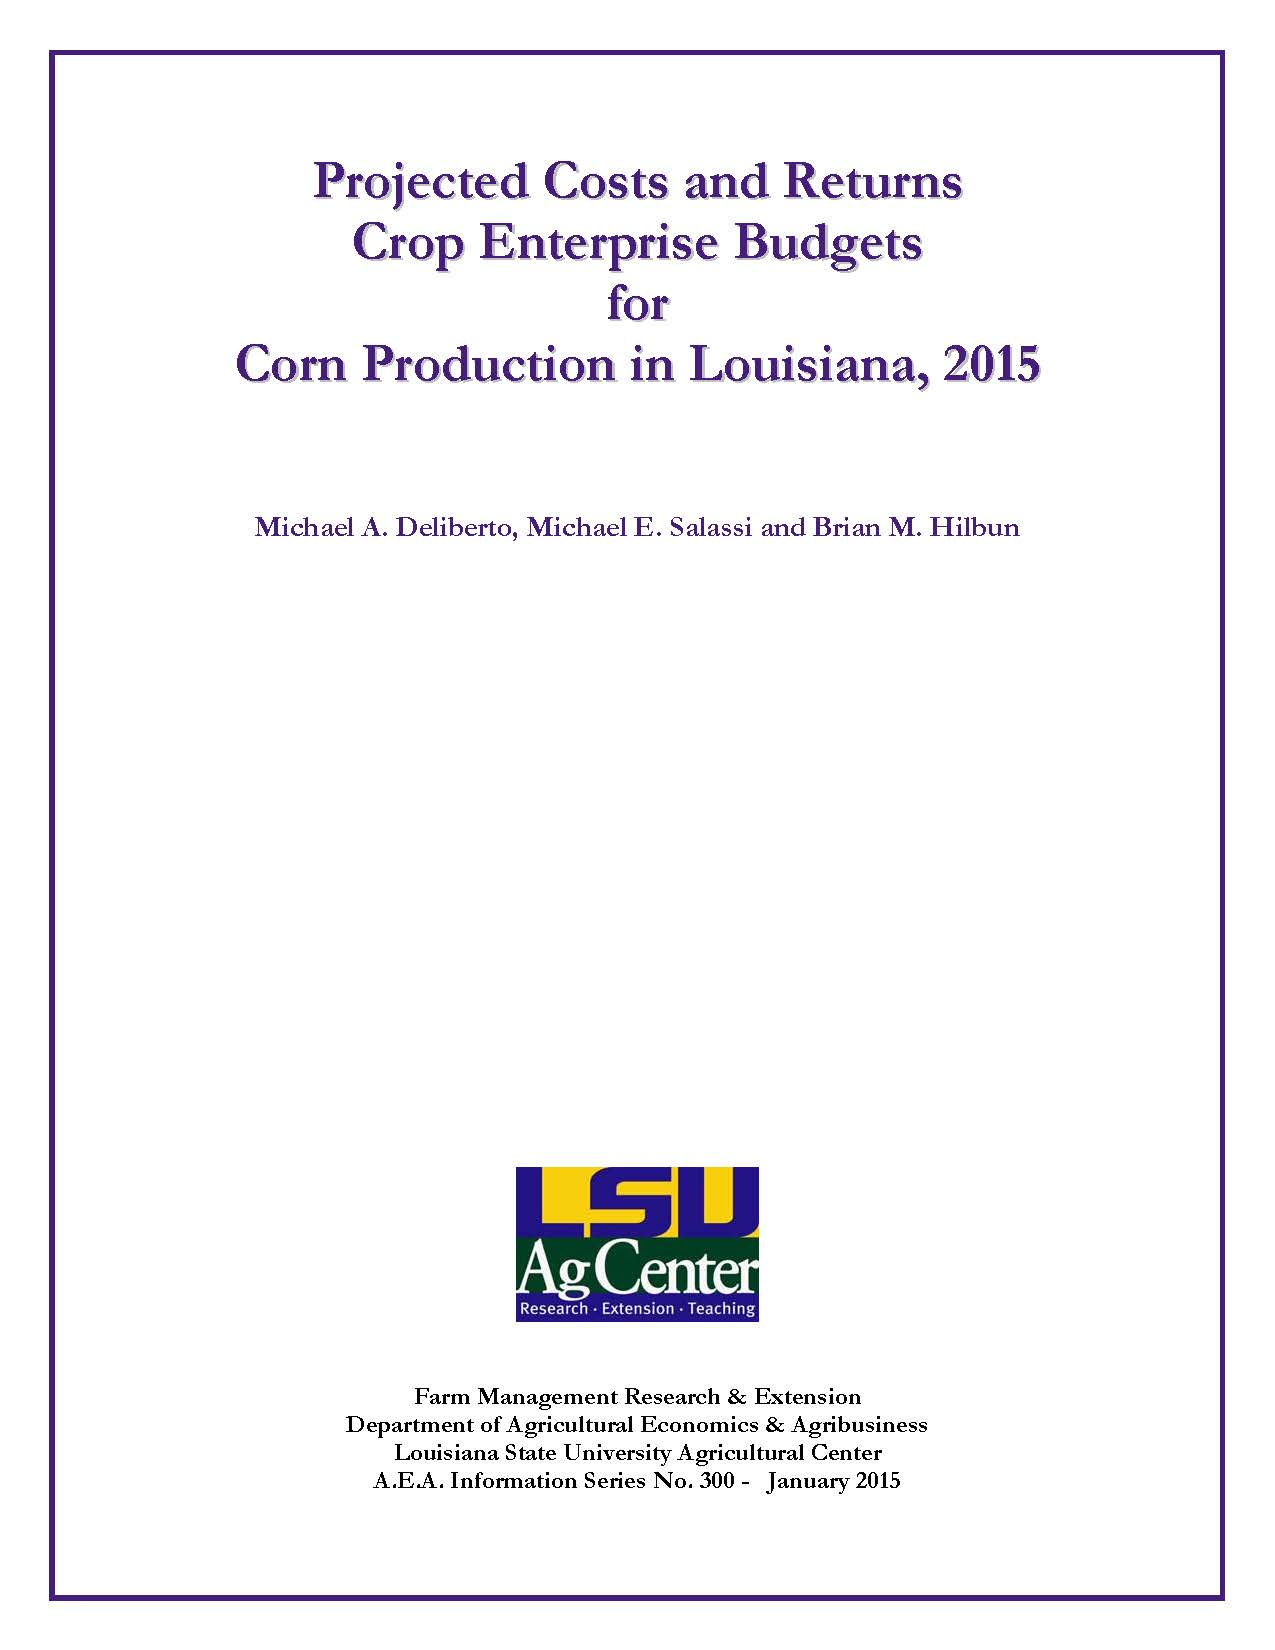 Projected Costs and Returns Crop Enterprise Budgets for Corn Production in Louisiana 2015